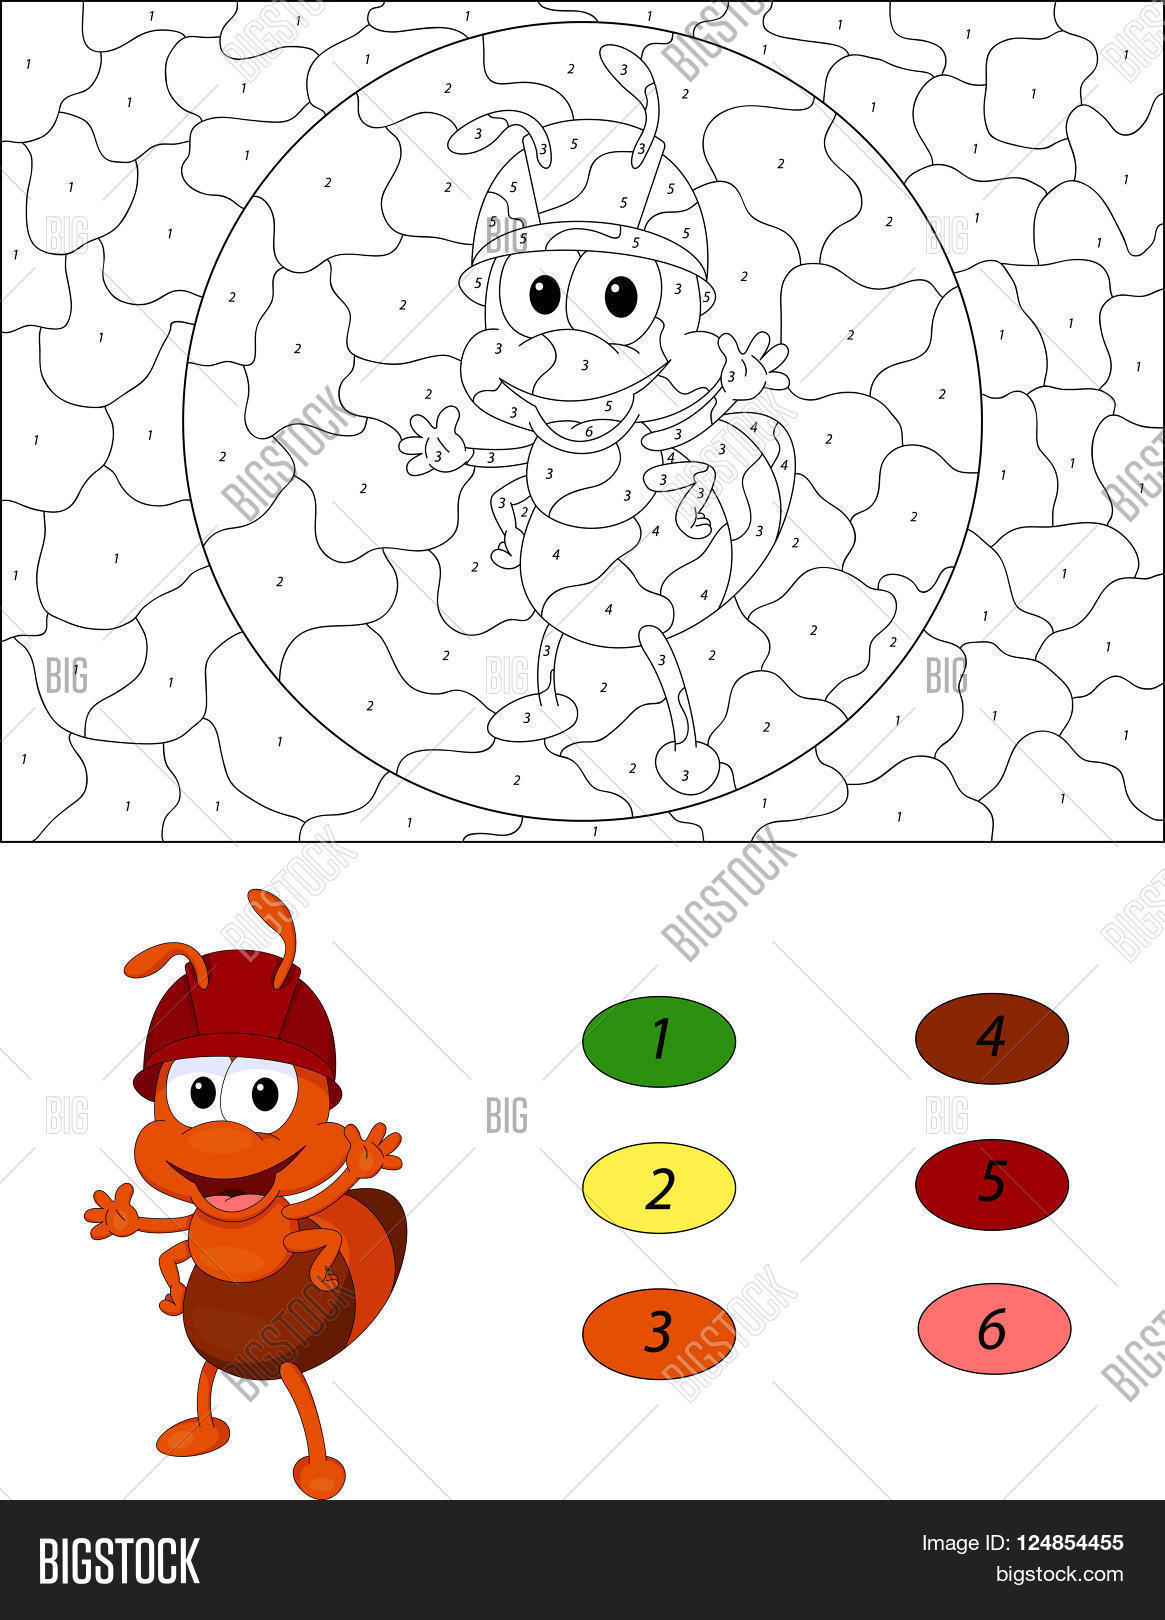 Game color by numbers - Cartoon Ant Color By Number Educational Game For Kids